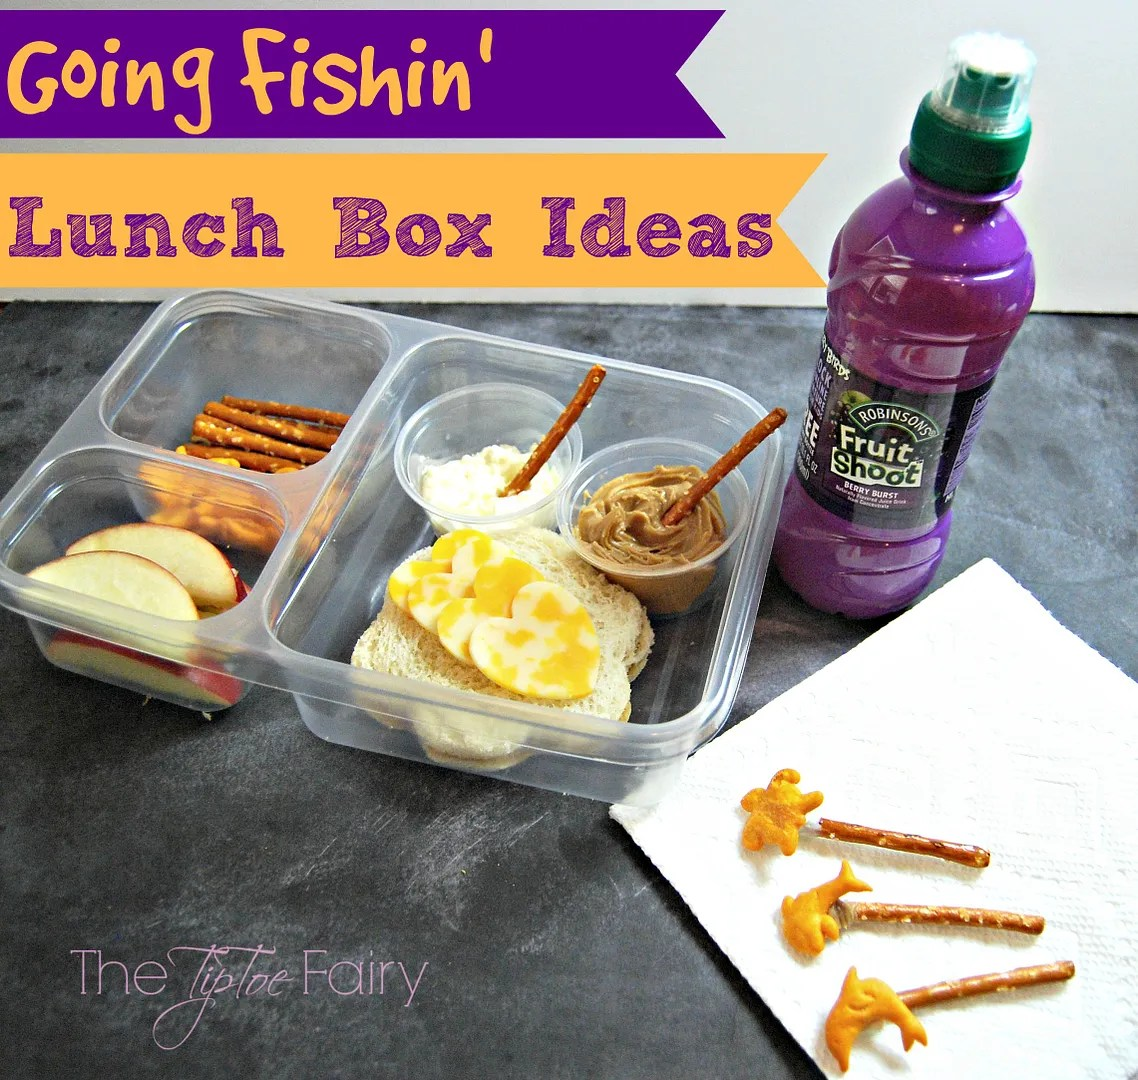 Lunch Box Ideas with Fruit Shoot | The TipToe Fairy